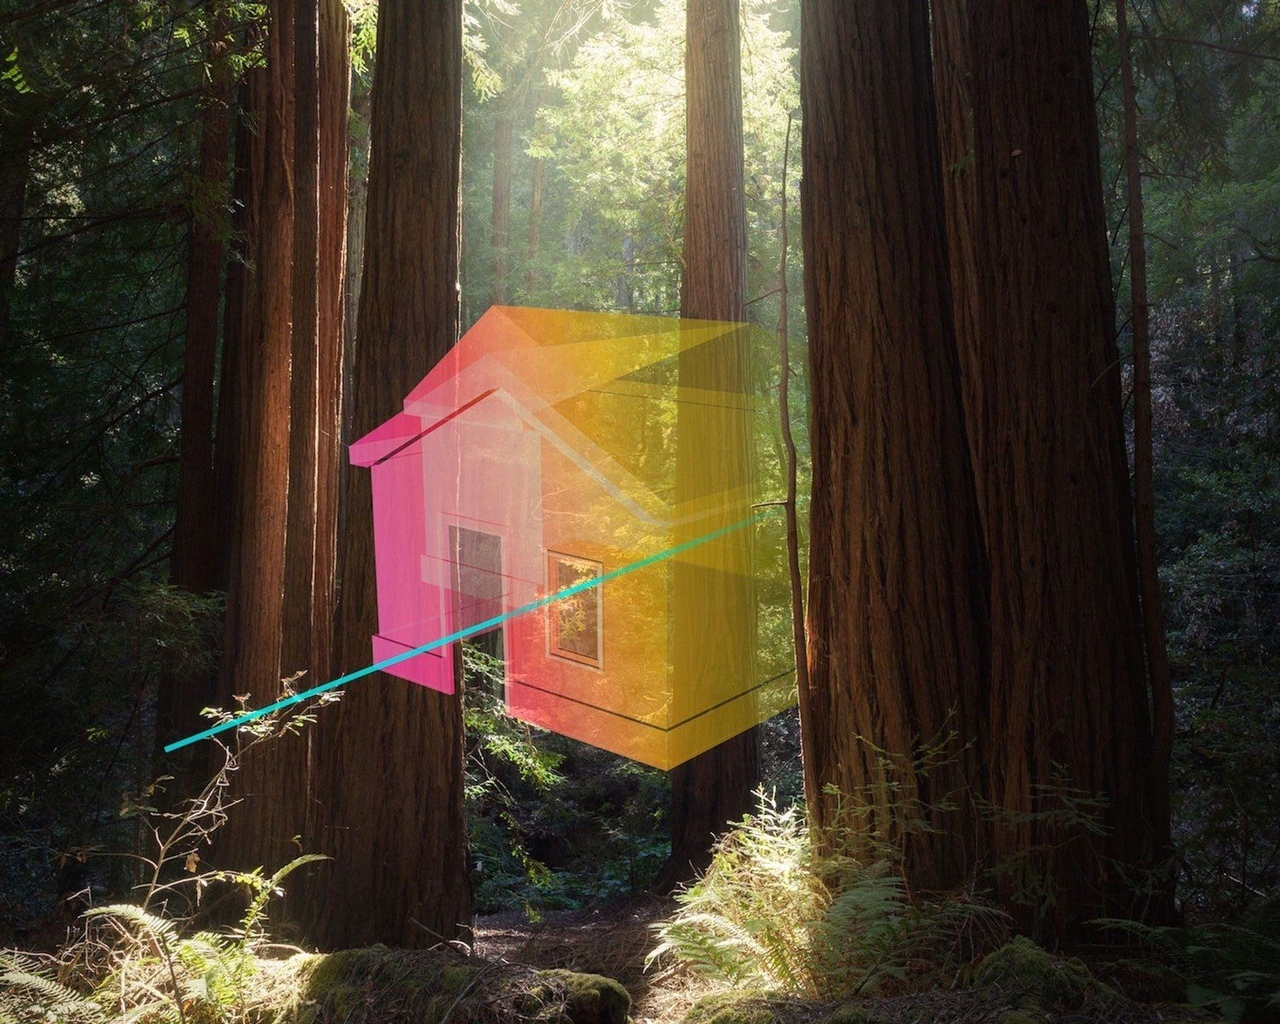 MARK DORF'S SURREAL MIX OF PHOTOGRAPHY